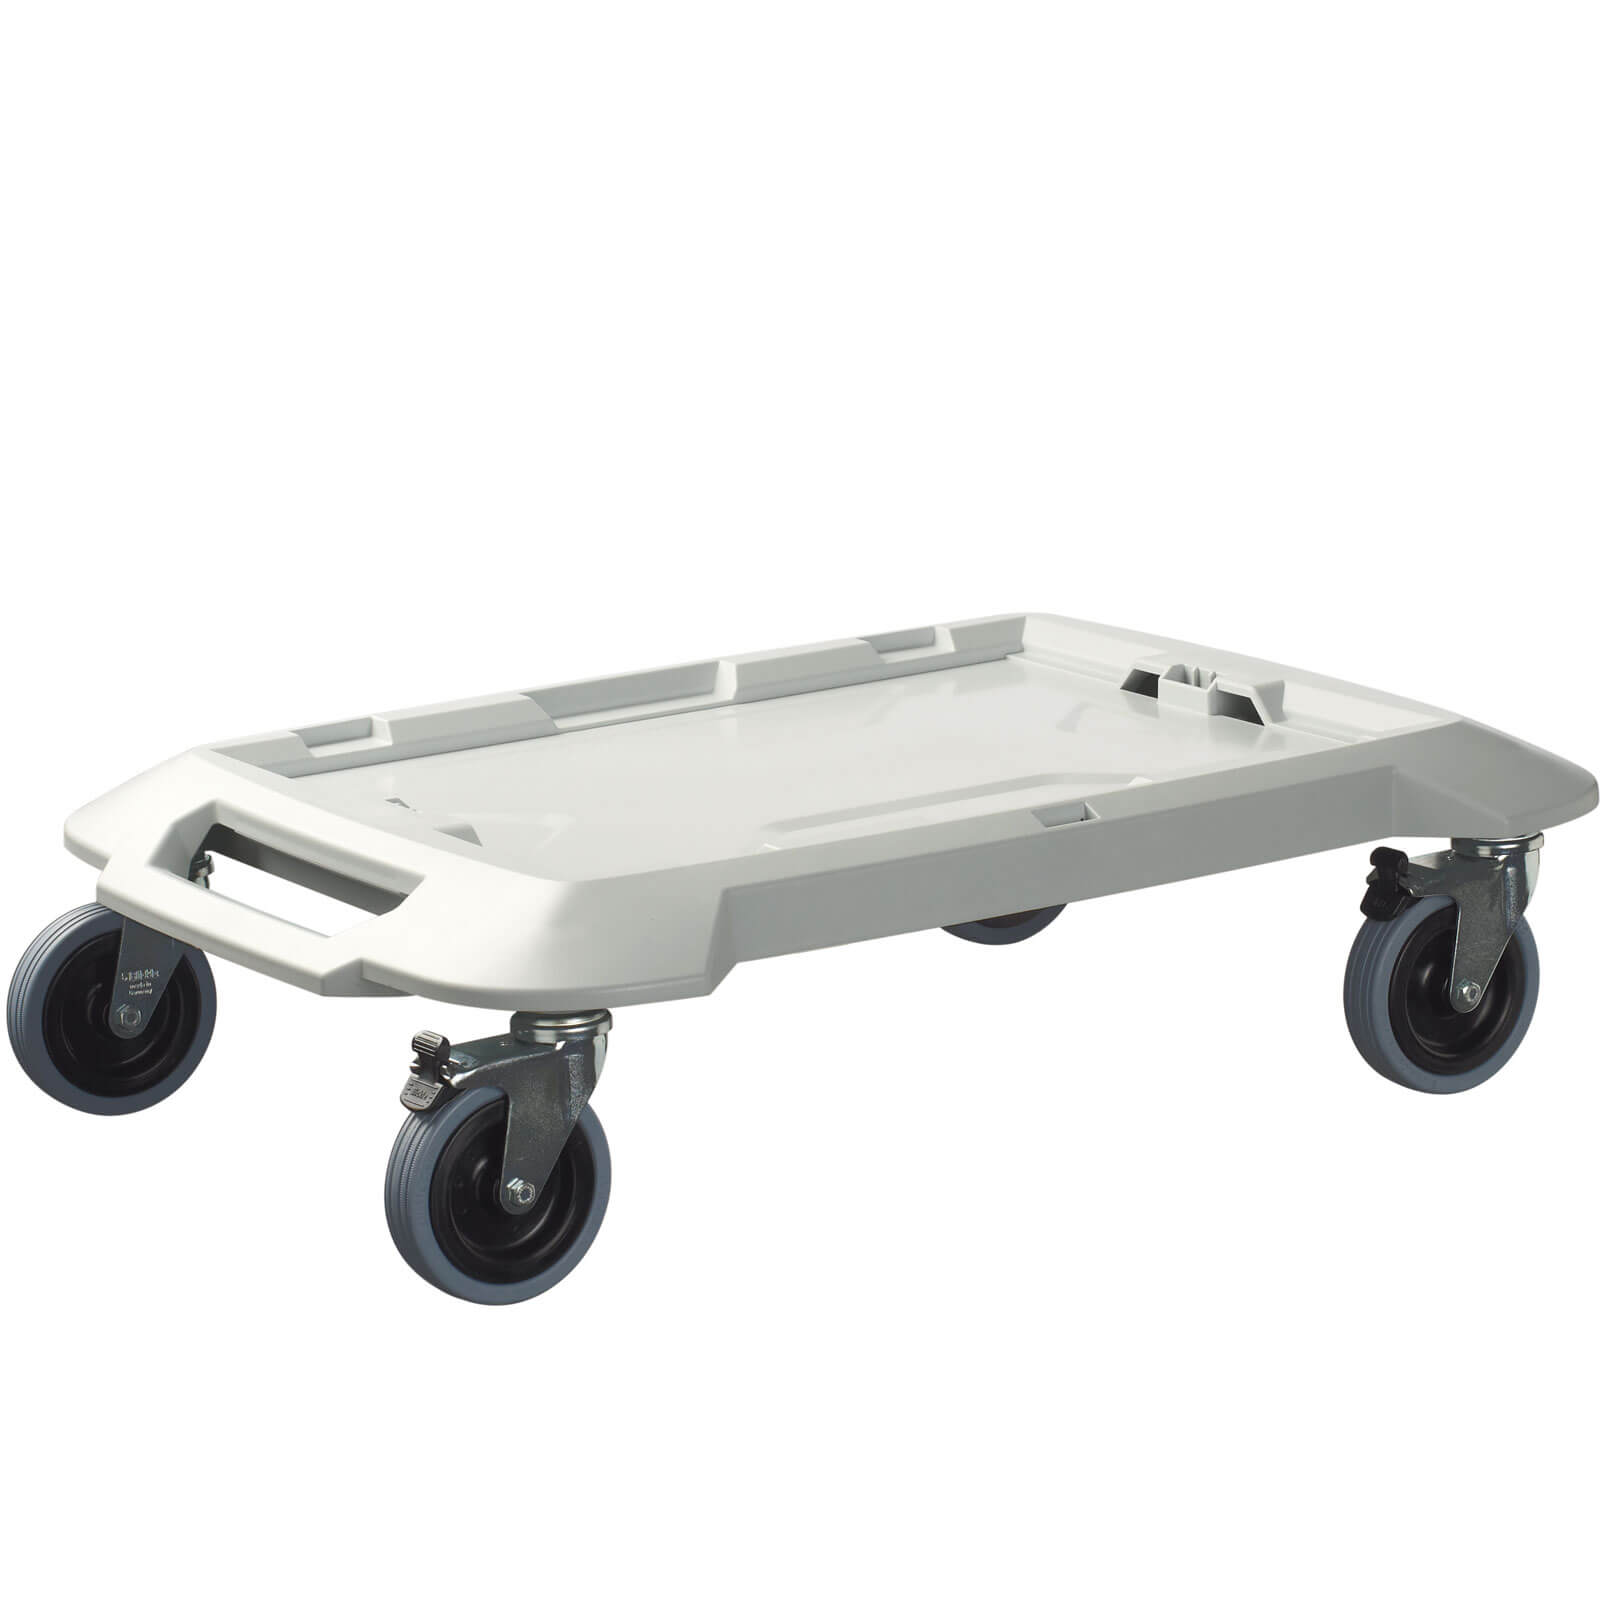 Image of Bosch L-BOXX Carrier Base Roller Caddy